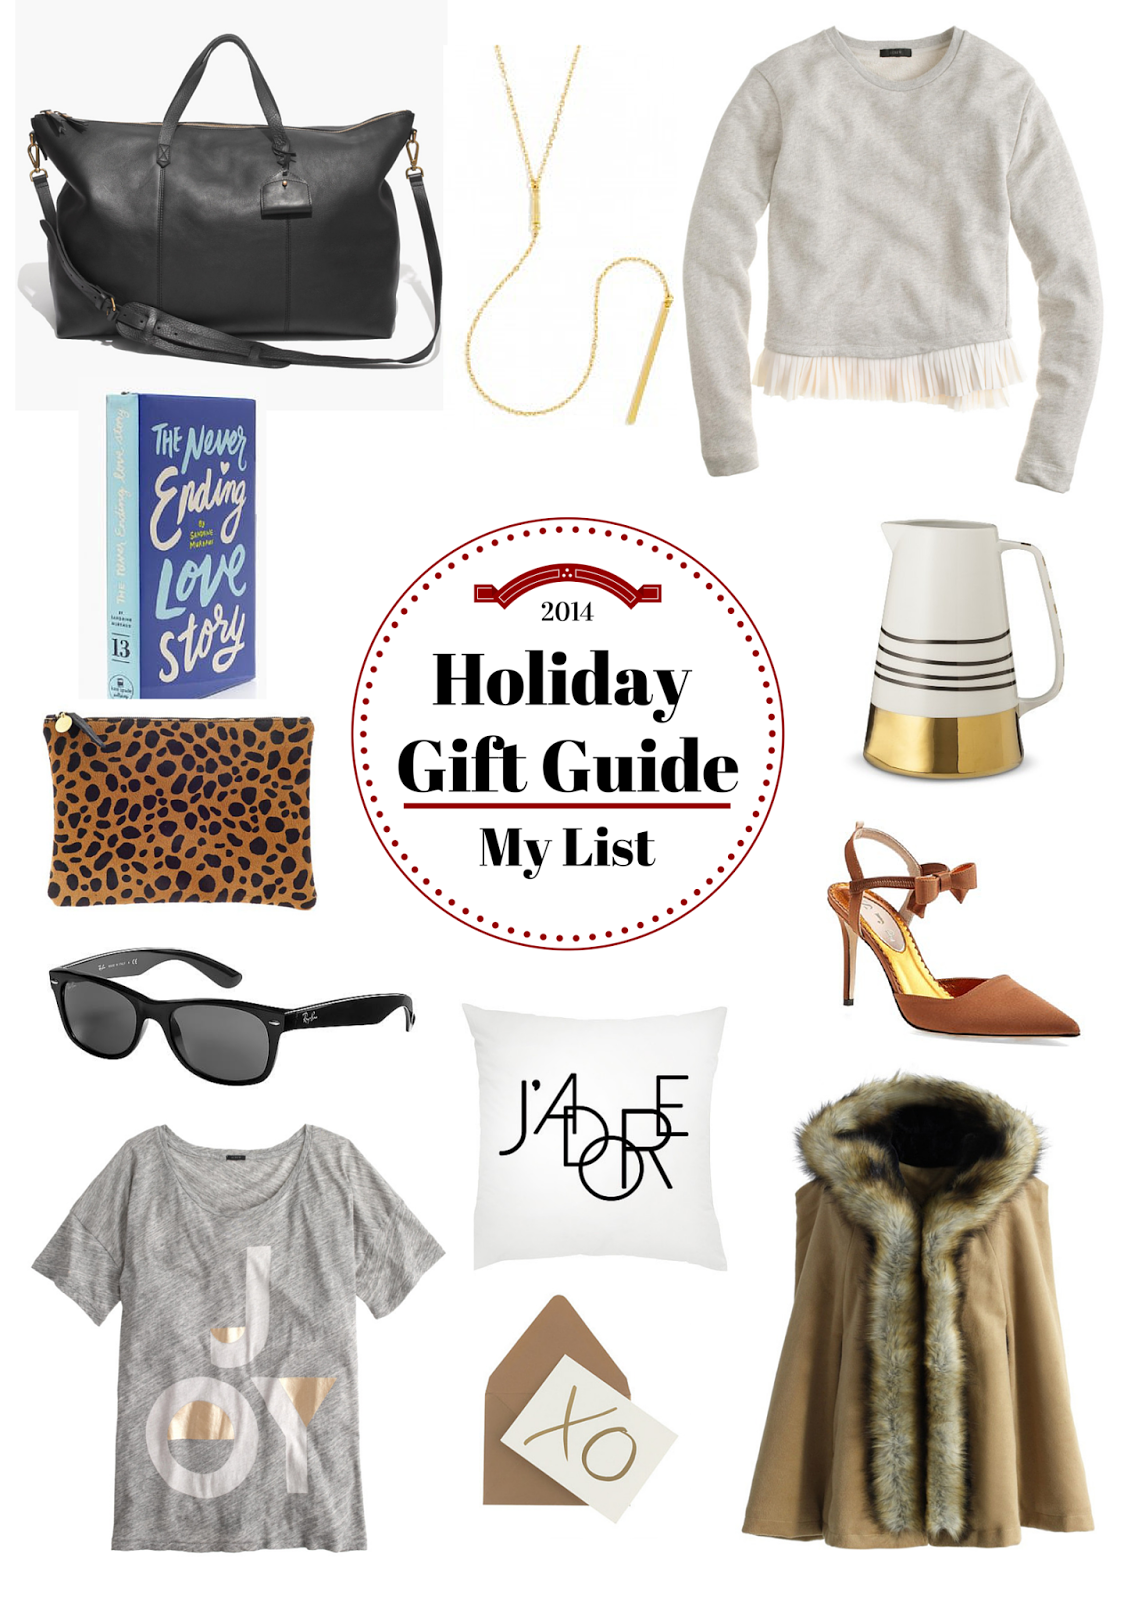 My List, Holiday Gift Guide, Project Soiree